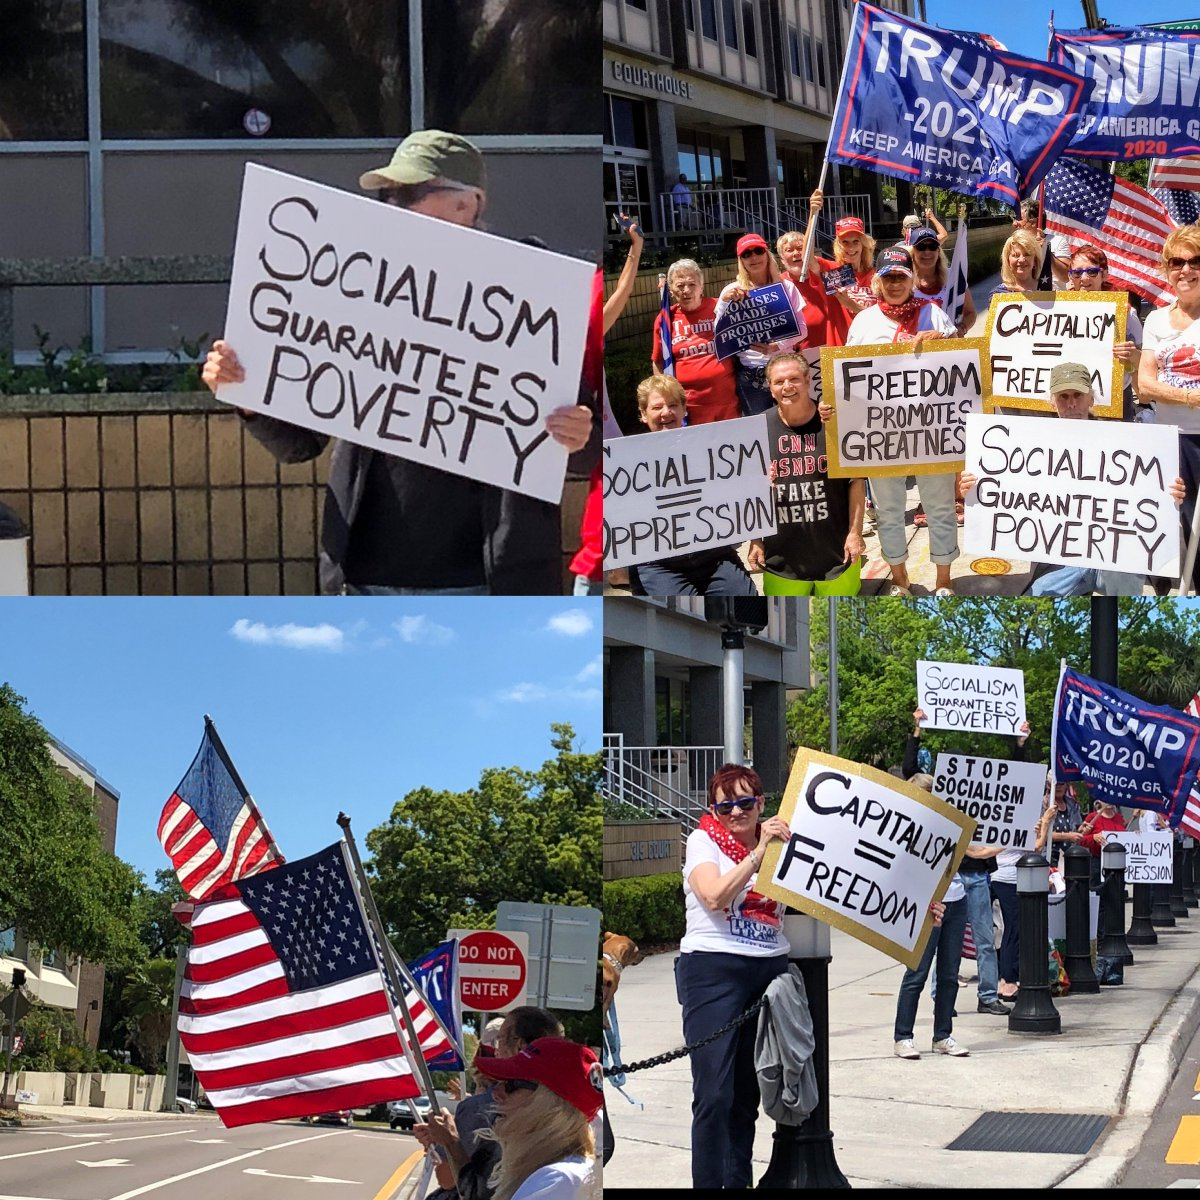 #TeaParty activists in Pinellas County, Florida took to the streets to support @realDonaldTrump and stand against #Socialism.  #StopSocialismChooseFreedom #TeaParty10 <br>http://pic.twitter.com/C6qVMBjJBm